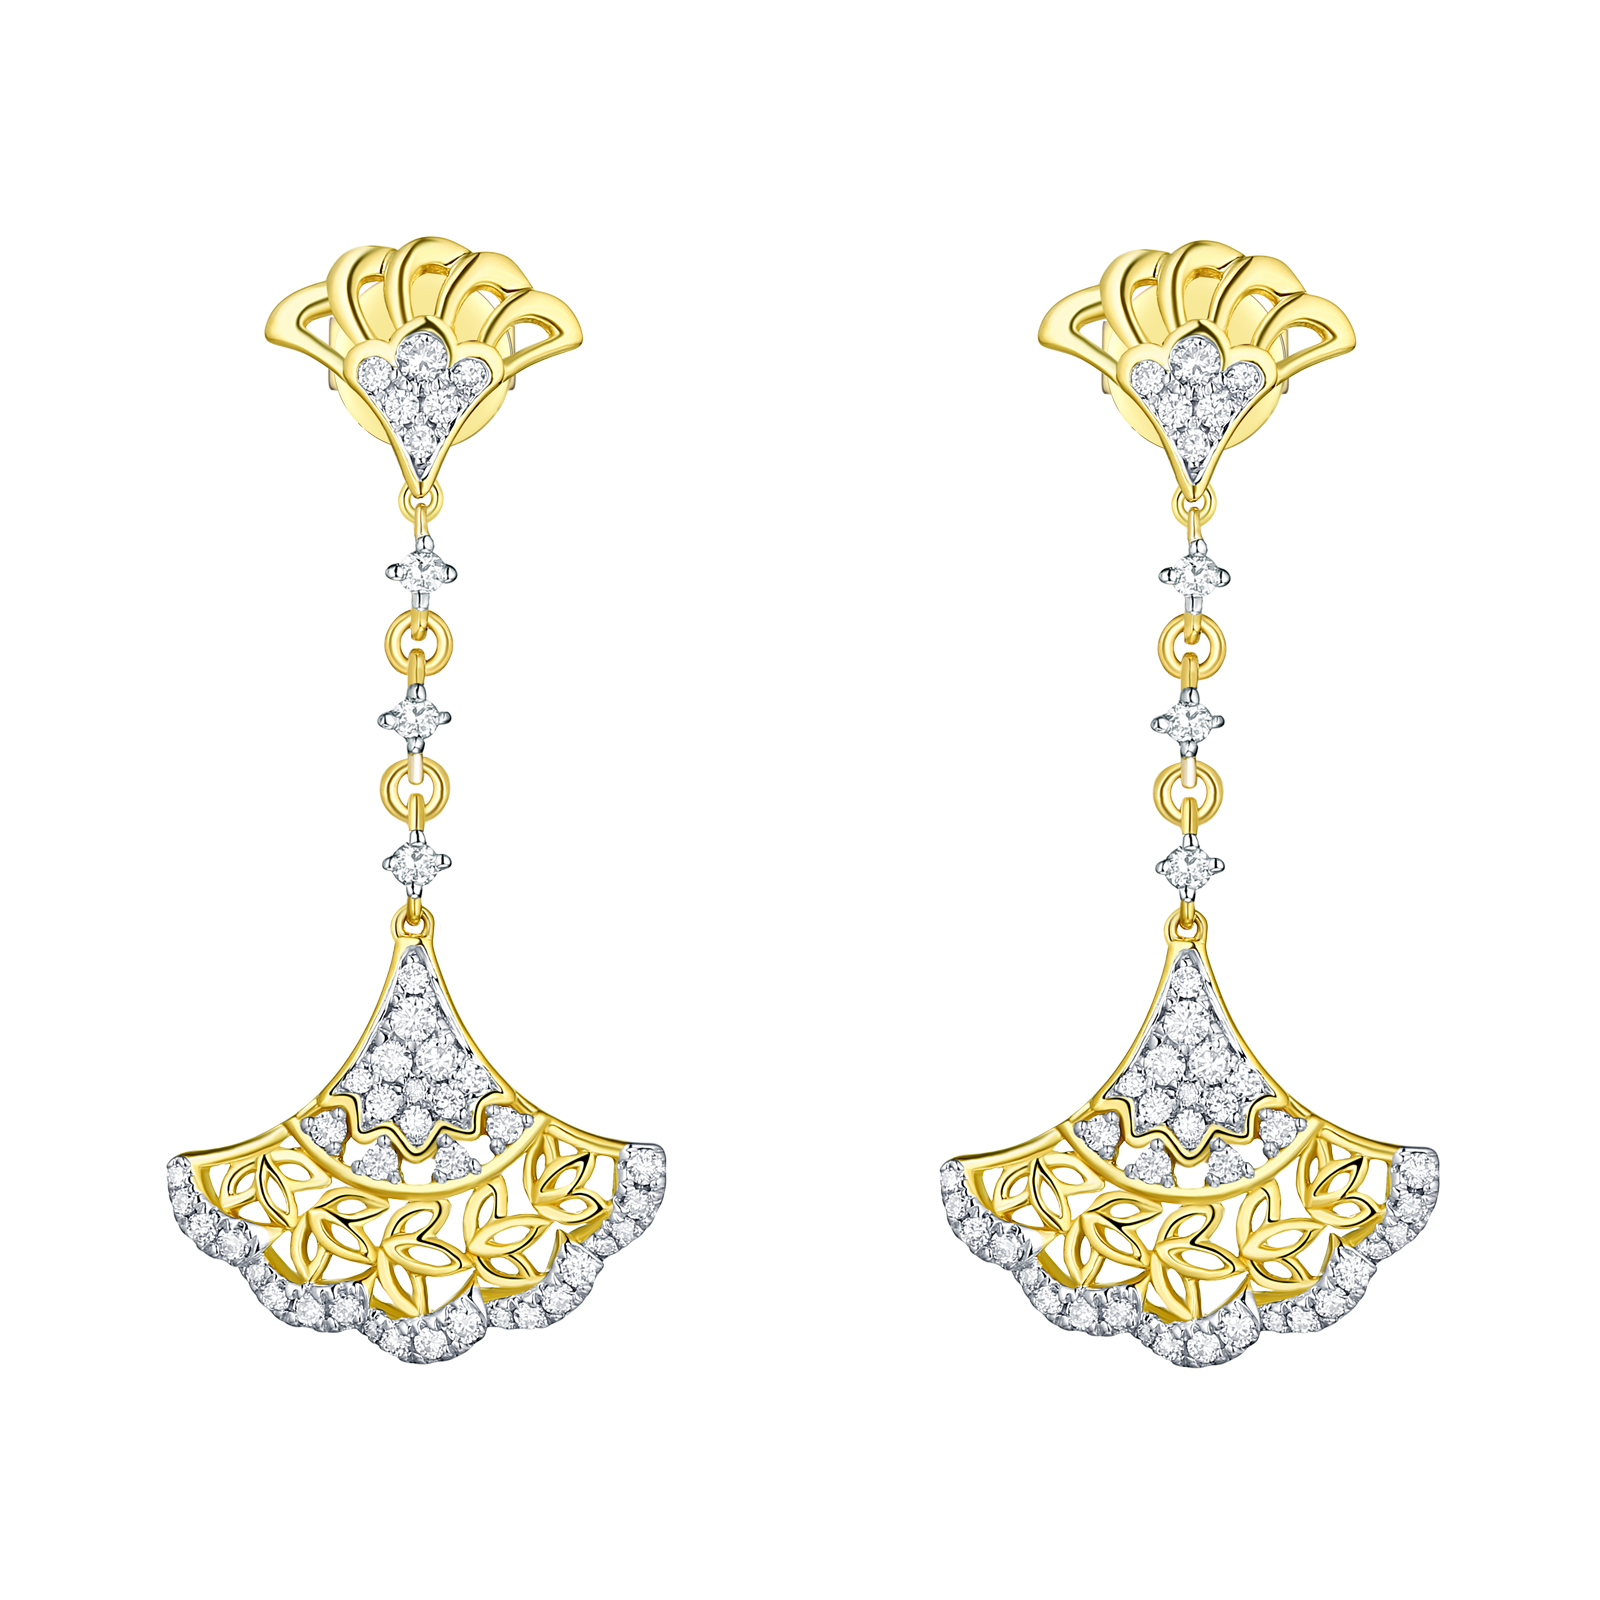 E29920WHT- 14K Yellow Gold Diamond Earrings, 0.42 TCW